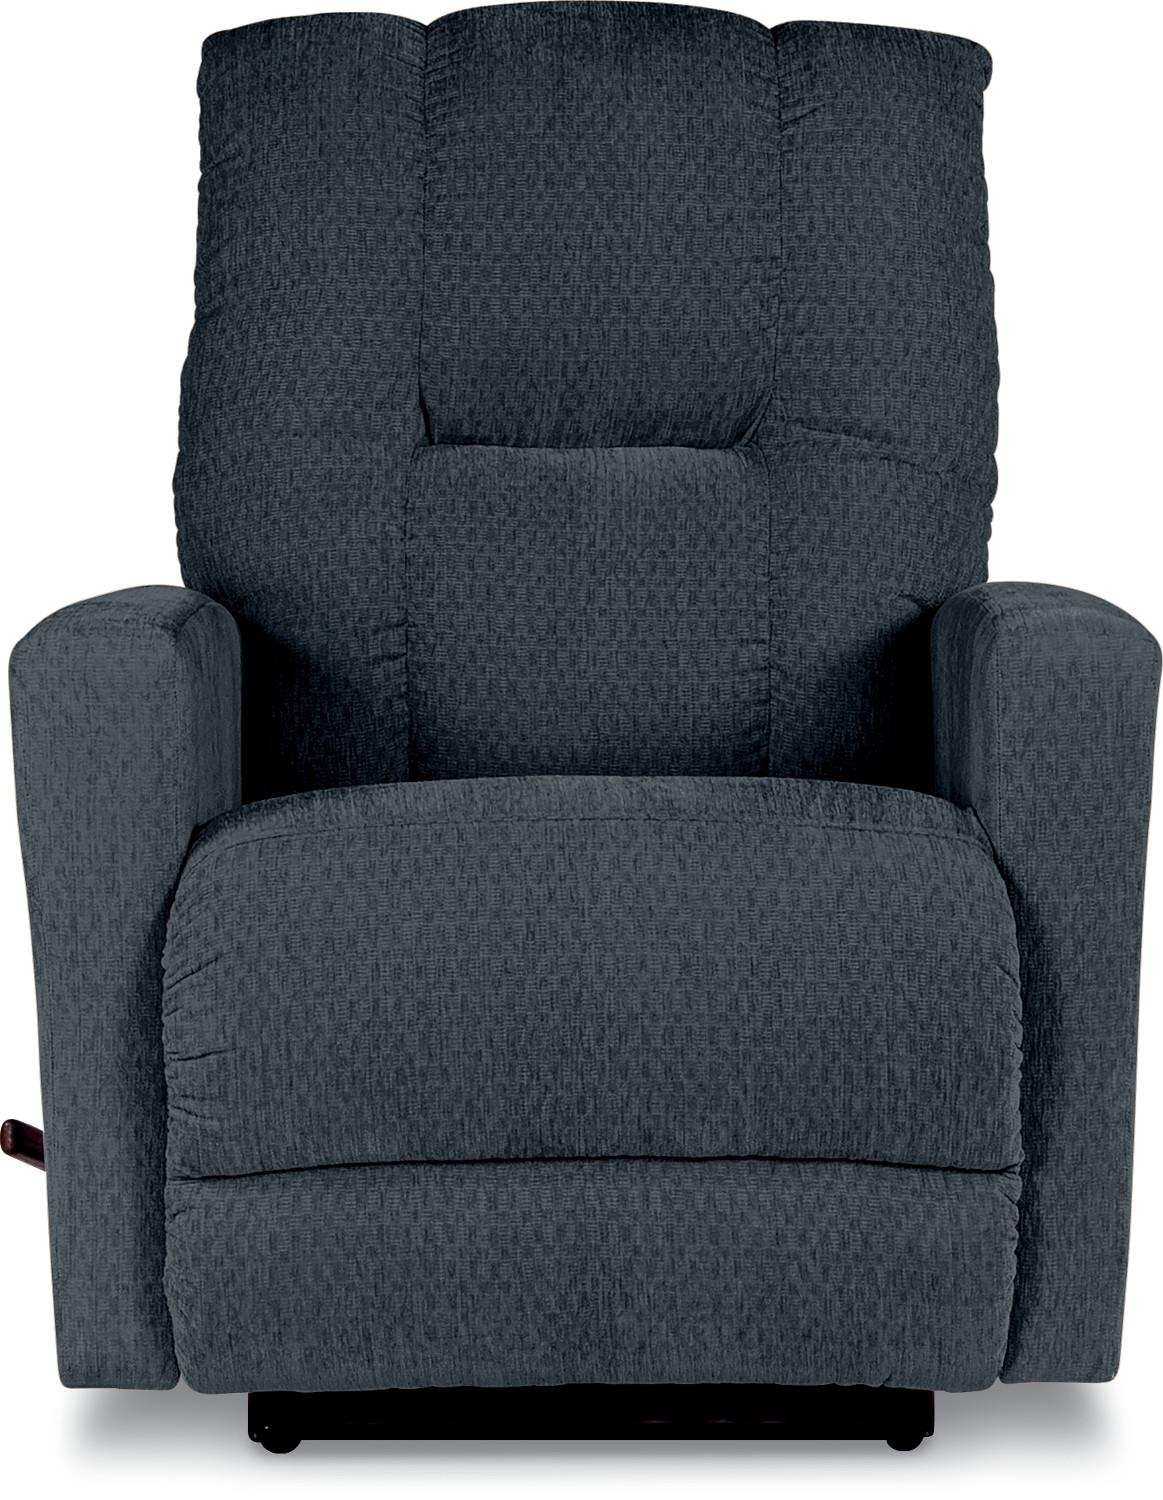 Casey RECLINA-WAY® Wall Recliner  sc 1 st  Wolf Furniture & Casey RECLINA-WAY® Wall Recliner by La-Z-Boy | Wolf and Gardiner ... islam-shia.org